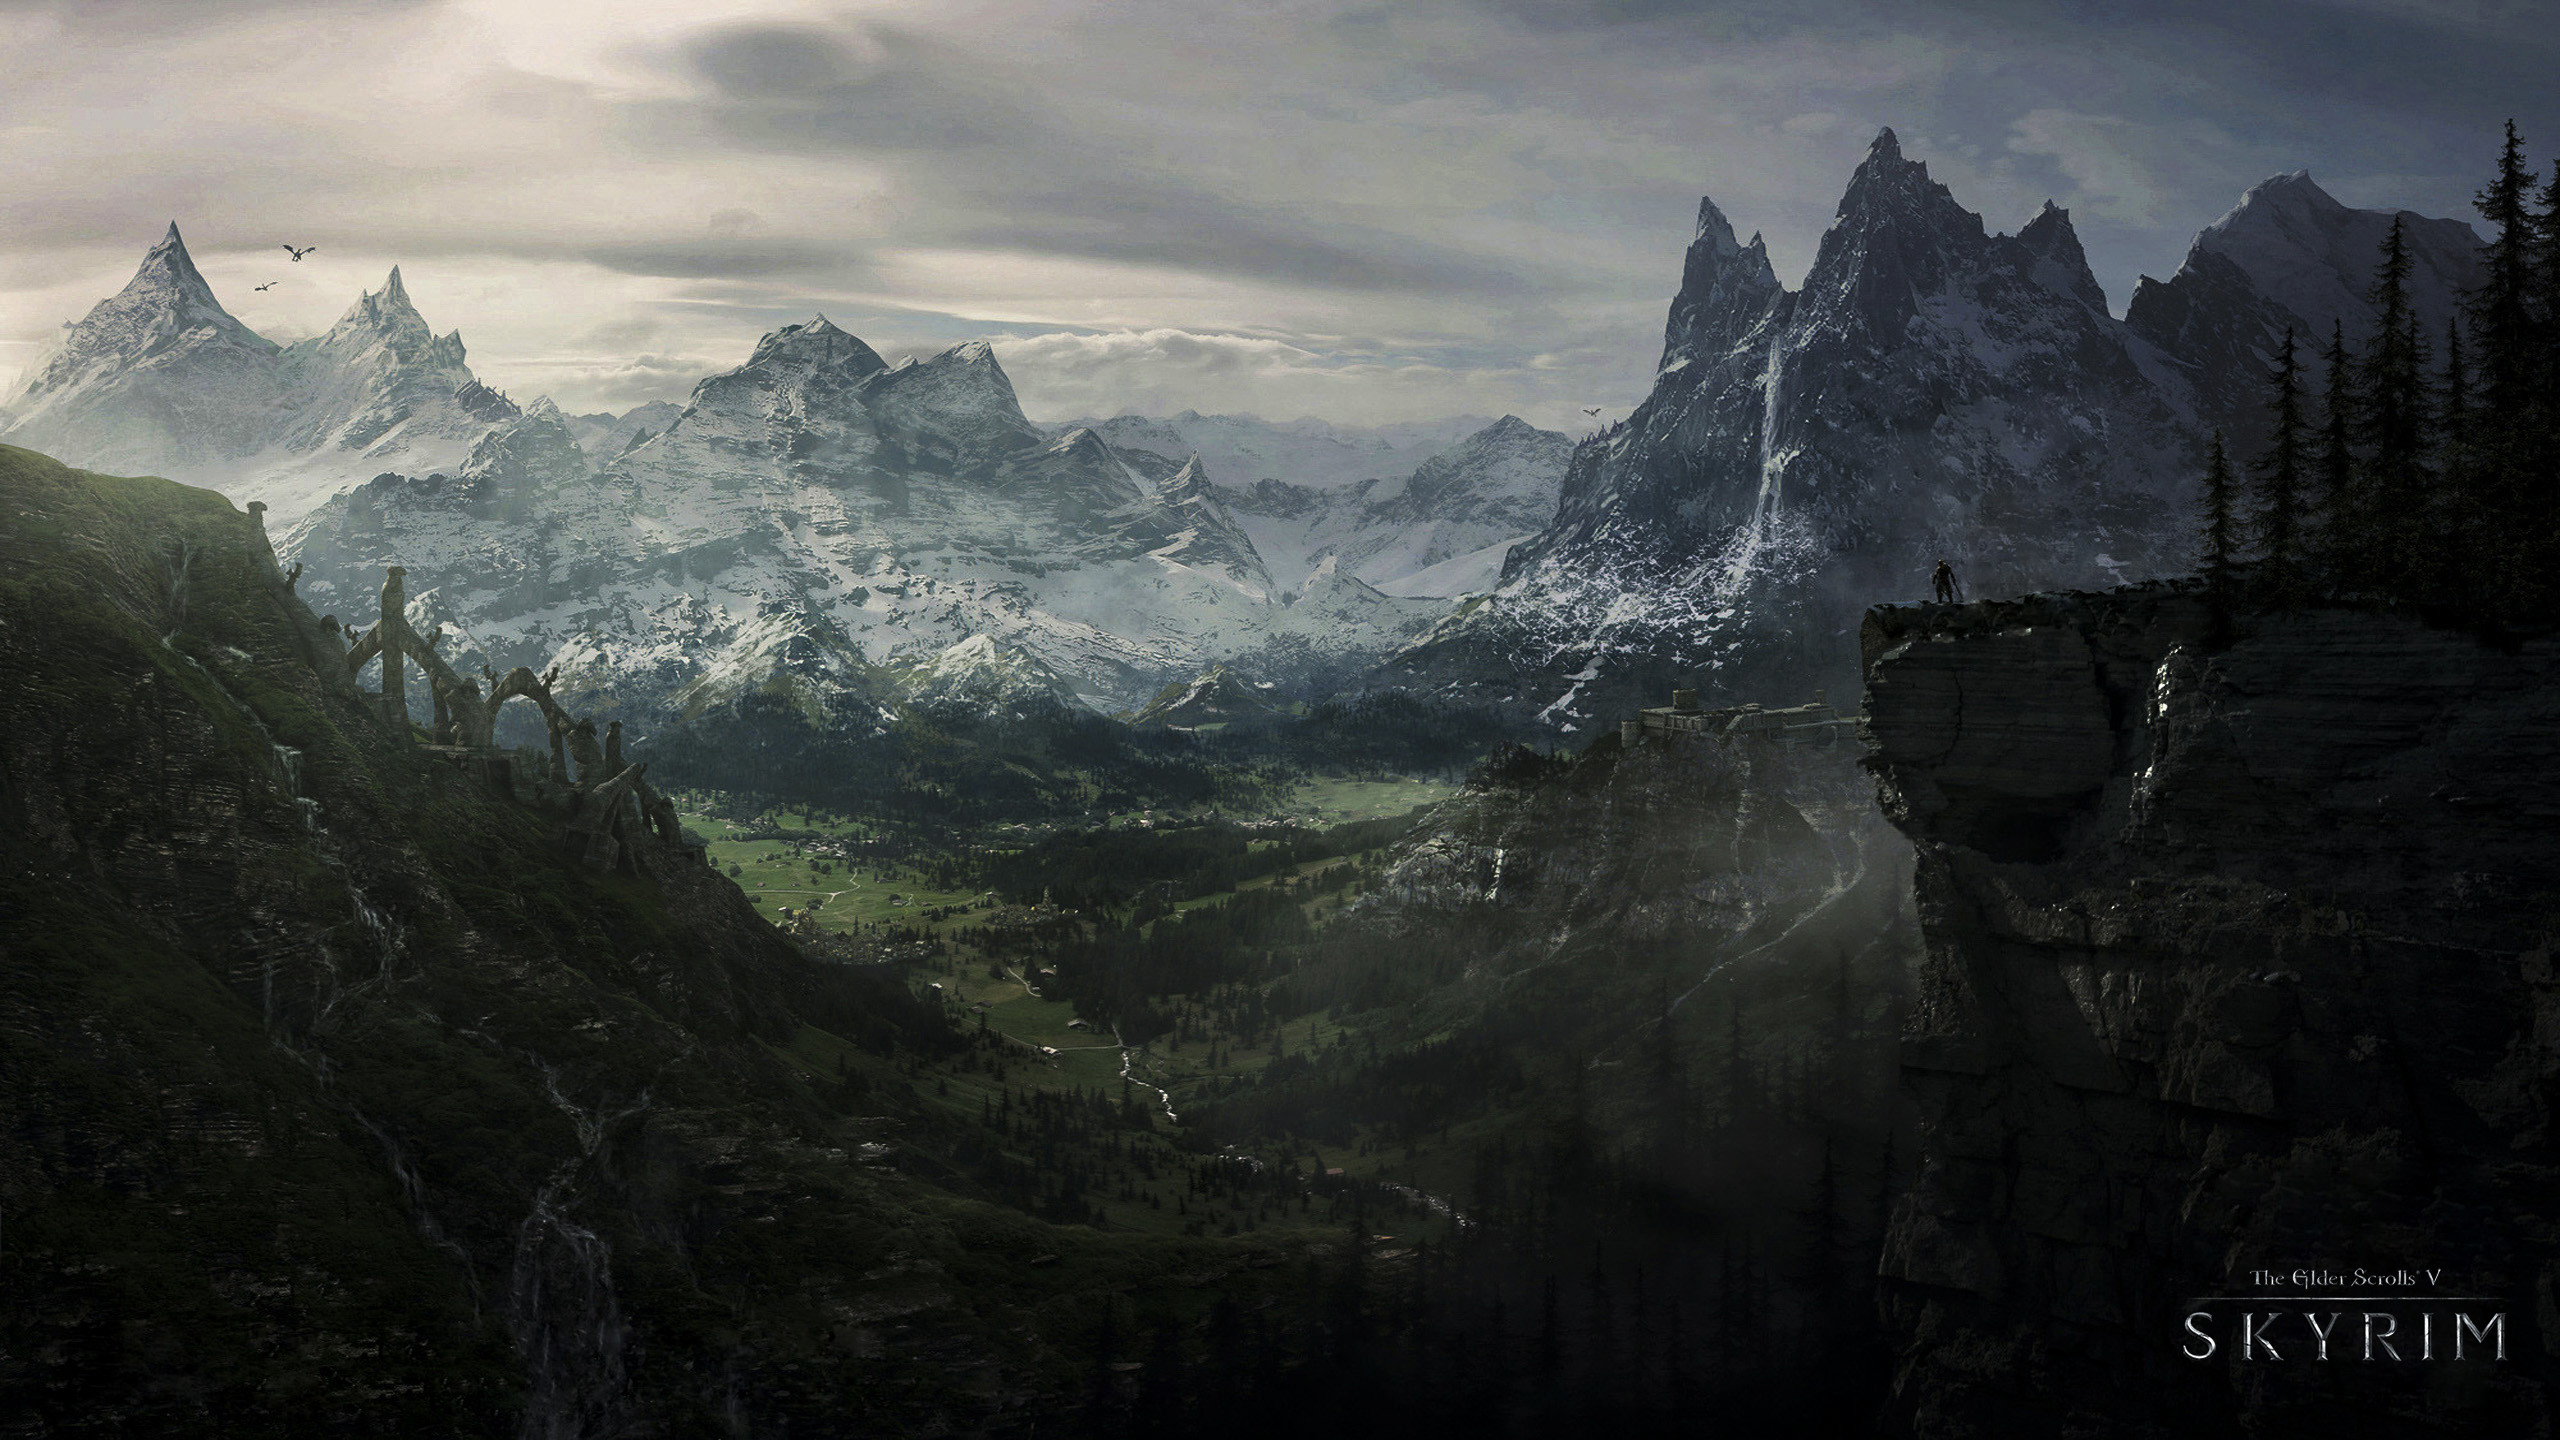 2560x1440 The Elder Scrolls V Skyrim HD Wallpapers Backgrounds | HD Wallpapers |  Pinterest | Skyrim, Wallpaper and Wallpaper backgrounds